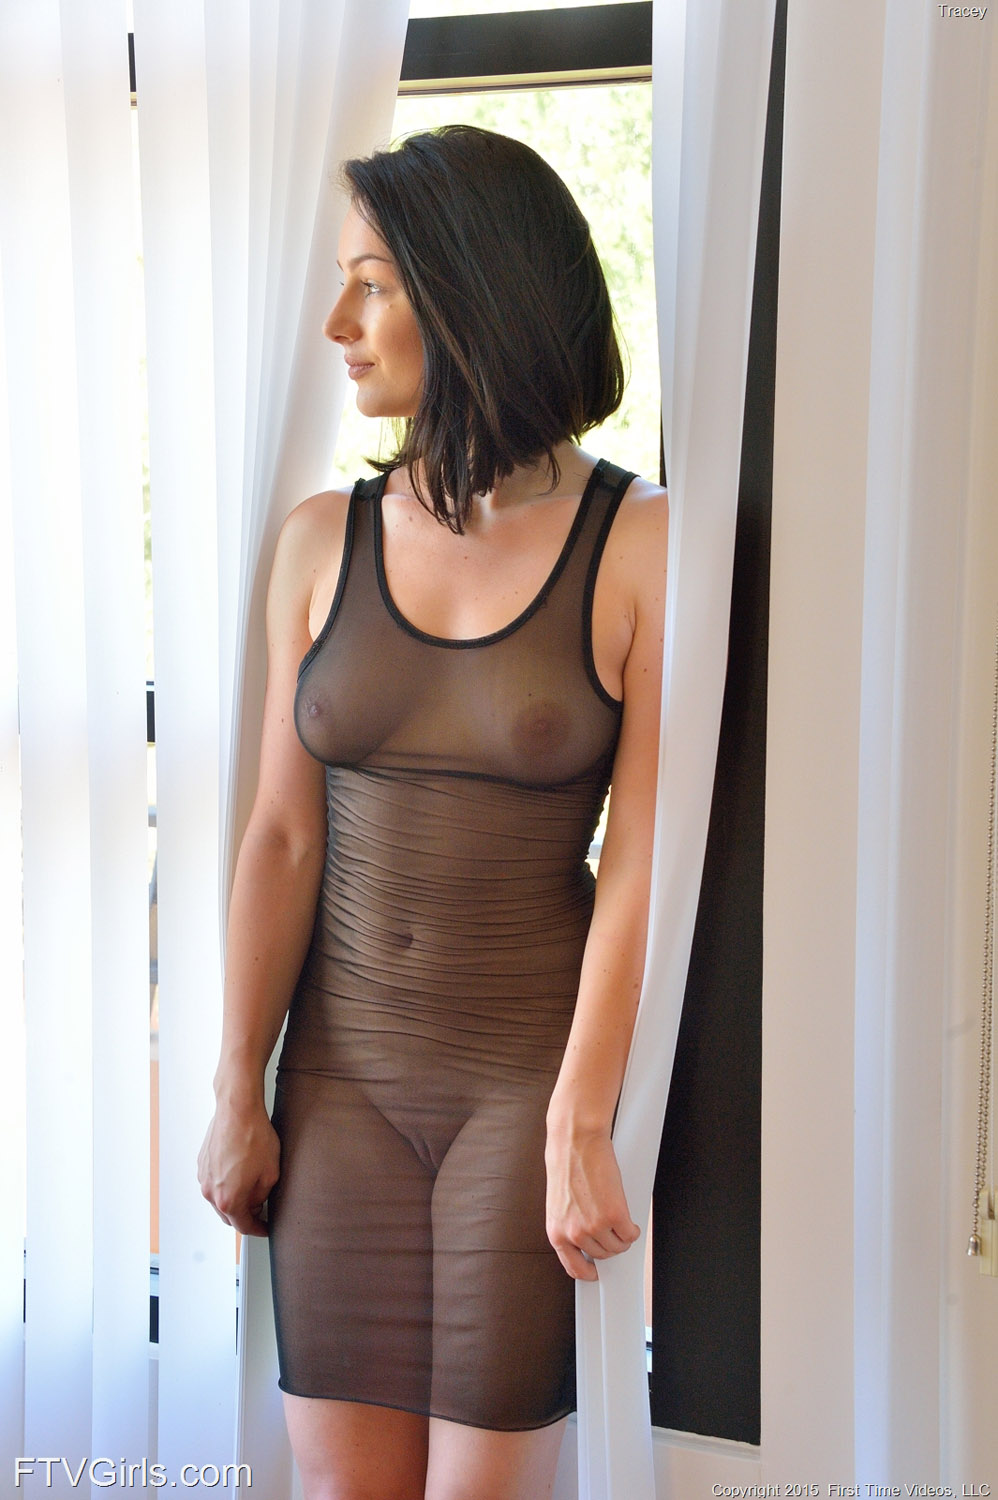 Xxx women wearing see thru clothes